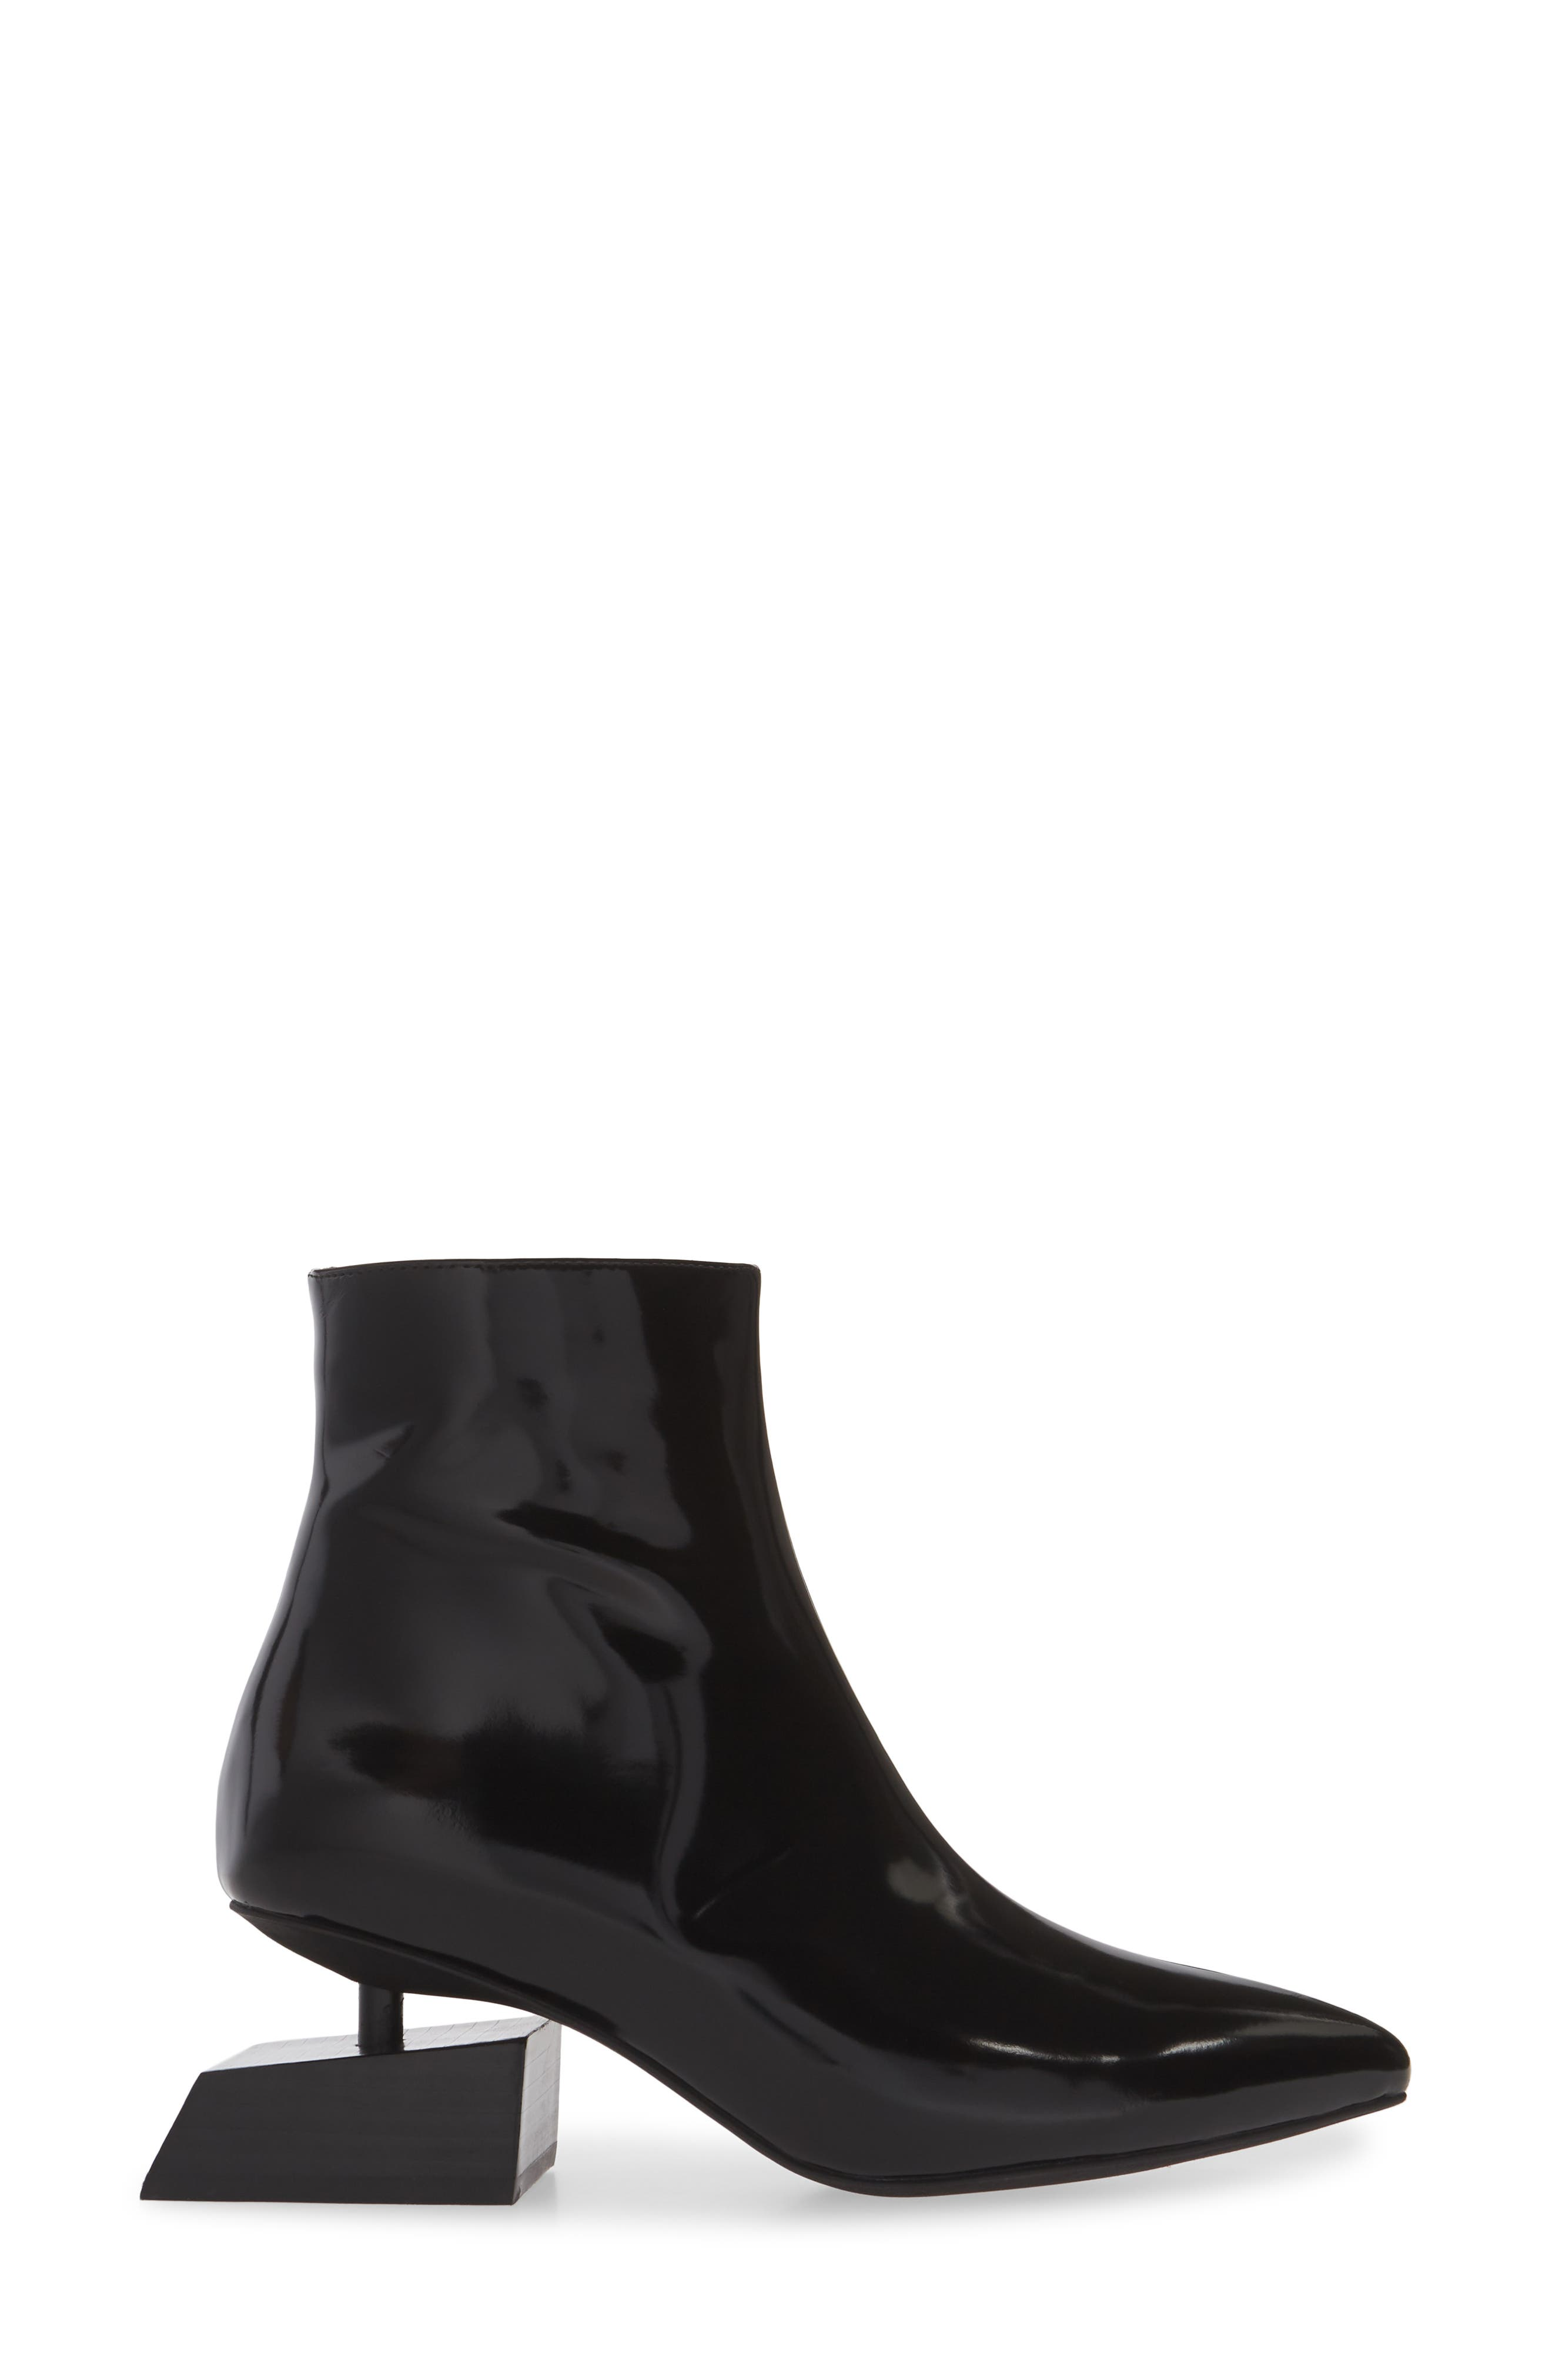 JEFFREY CAMPBELL, Anatomic Boot, Alternate thumbnail 3, color, BLACK LEATHER